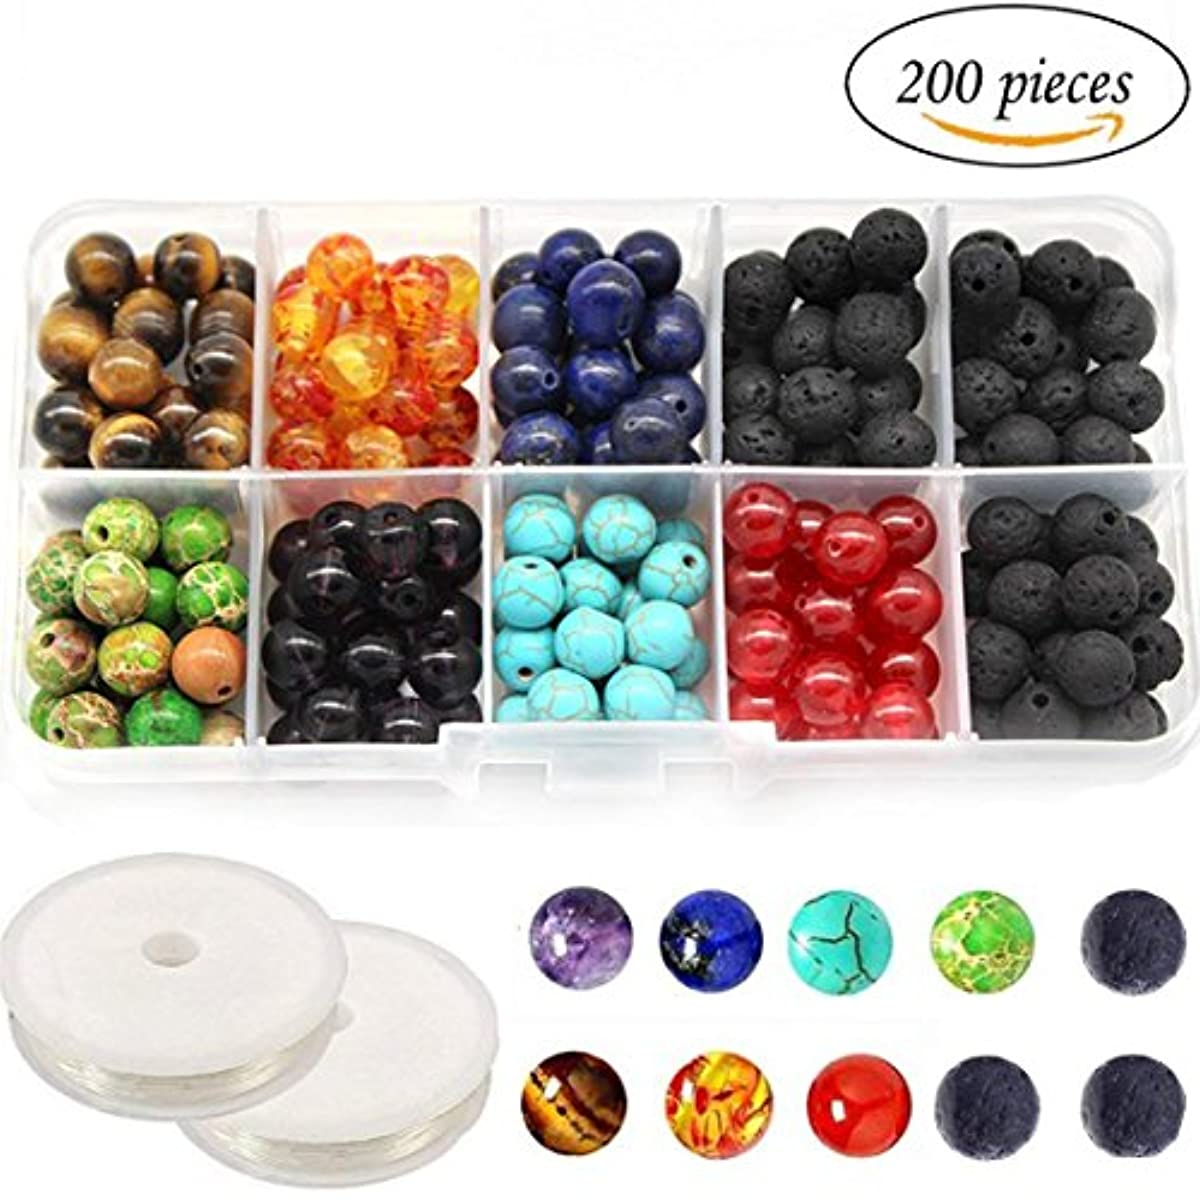 - 5 strands 16 Lava Rock Beads Mixed Color round ball Volcanic Jewelry for necklace-bracelet-earrings DIY  6mm\\8mm\\10mm\\12mm